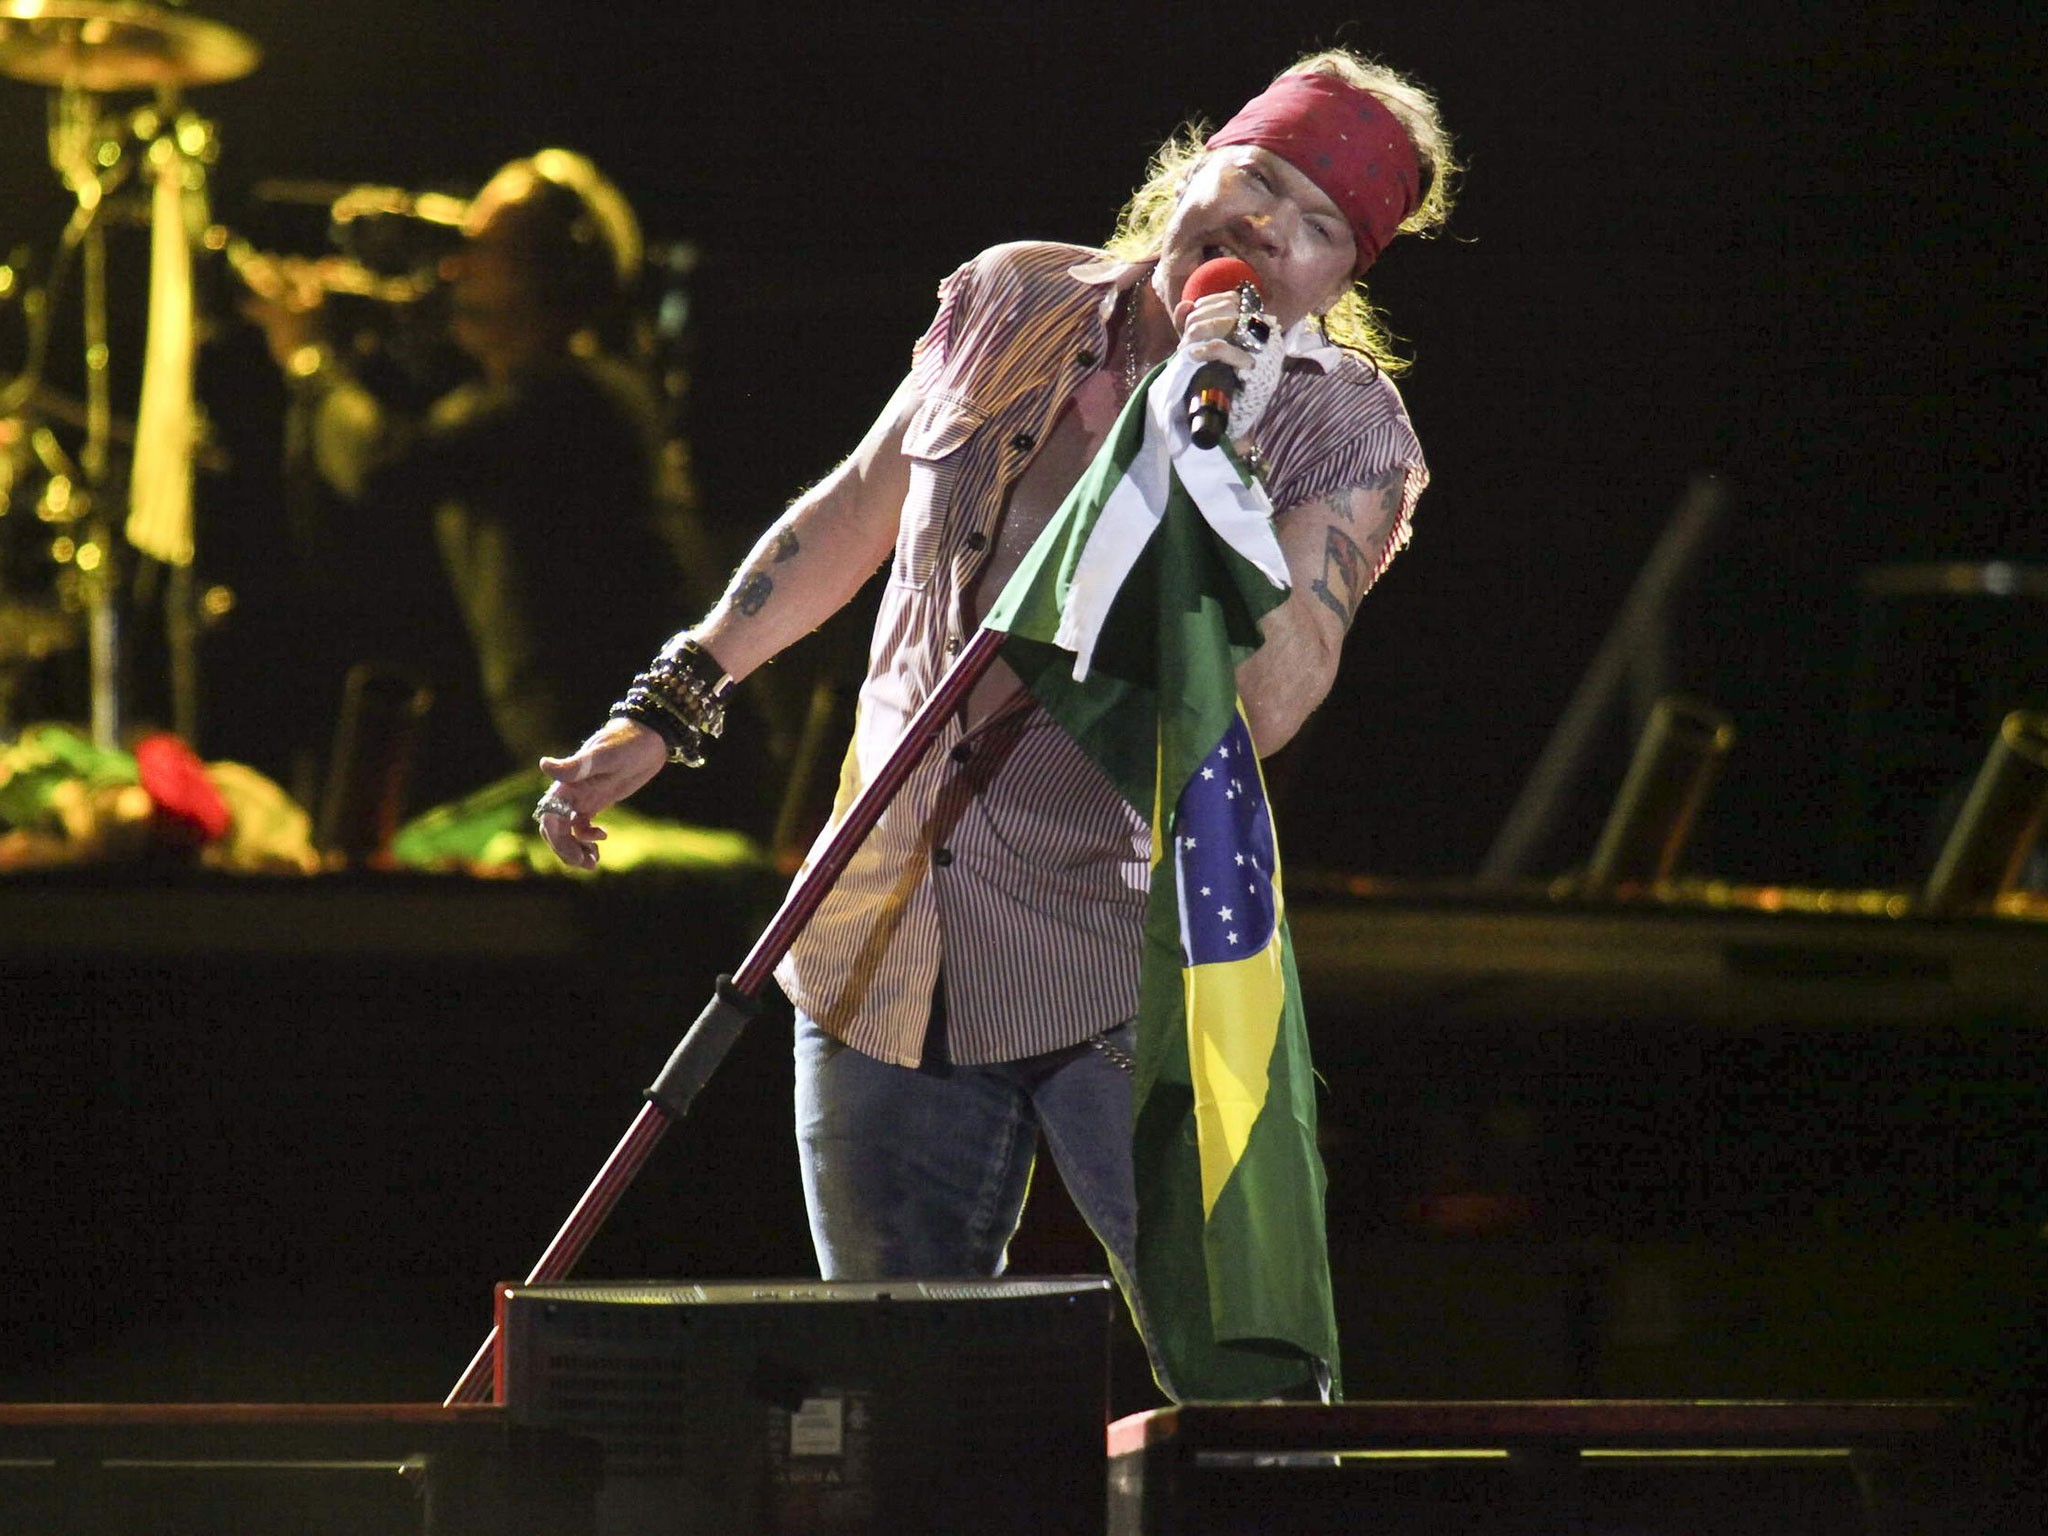 Brazil guns n roses HD Wallpaper